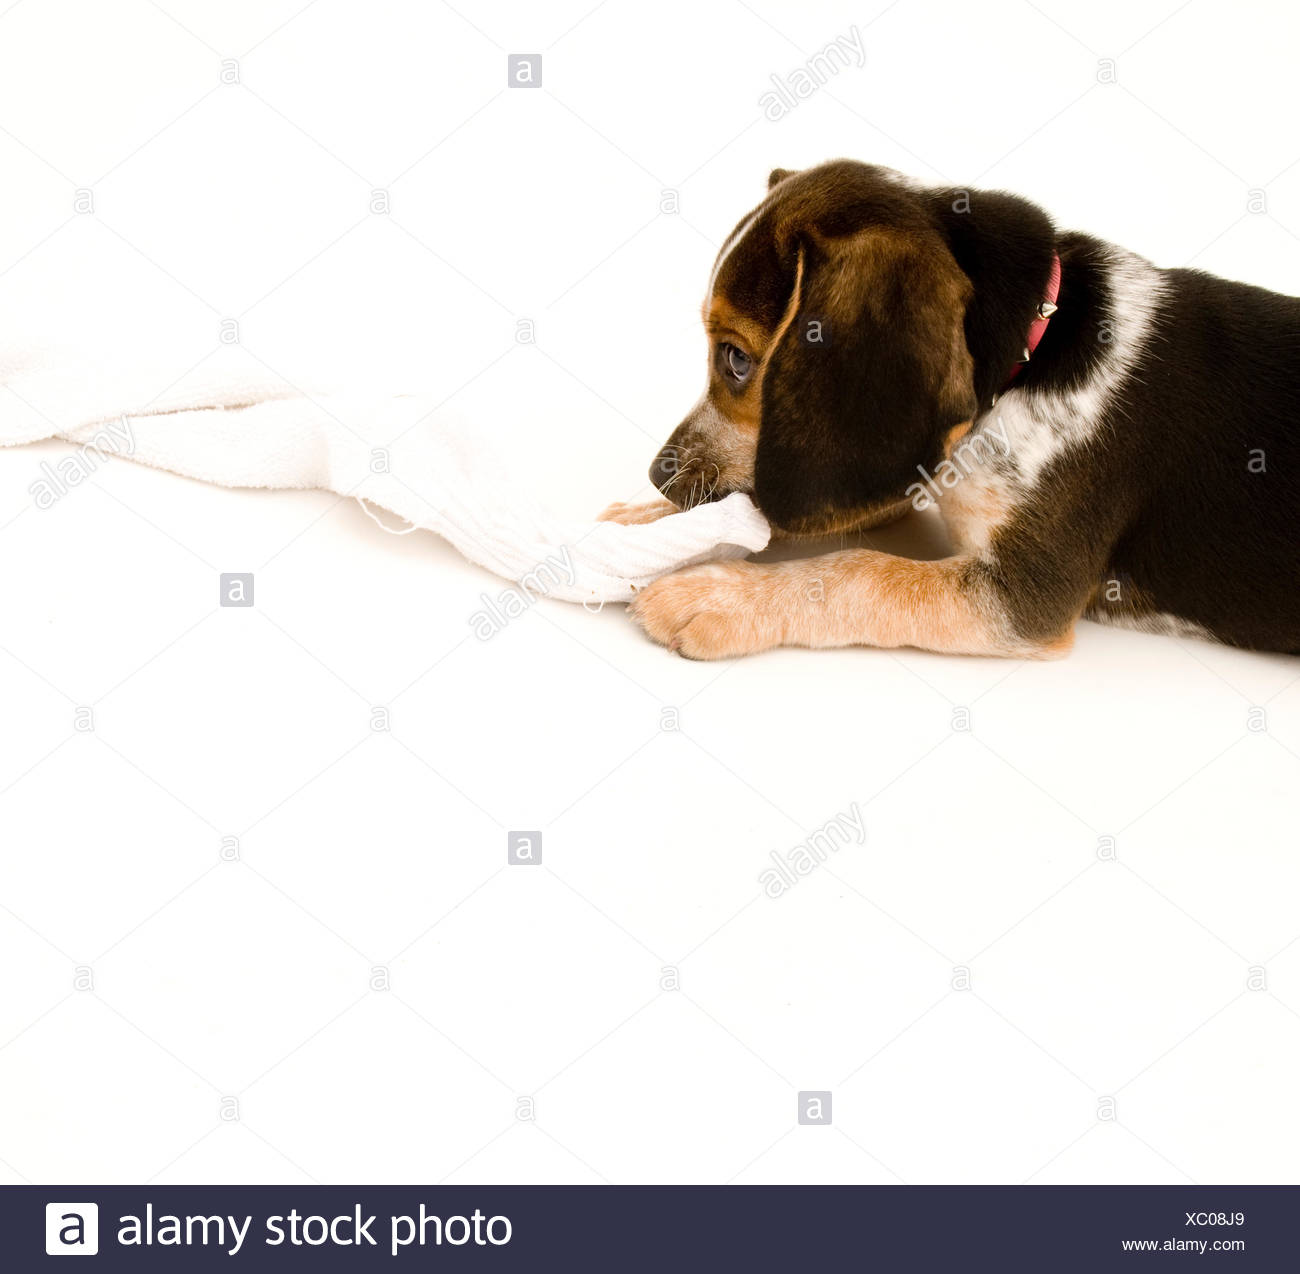 isolated, sock, beagle, maddening, pert, coquettish, cute, backdrop, - Stock Image